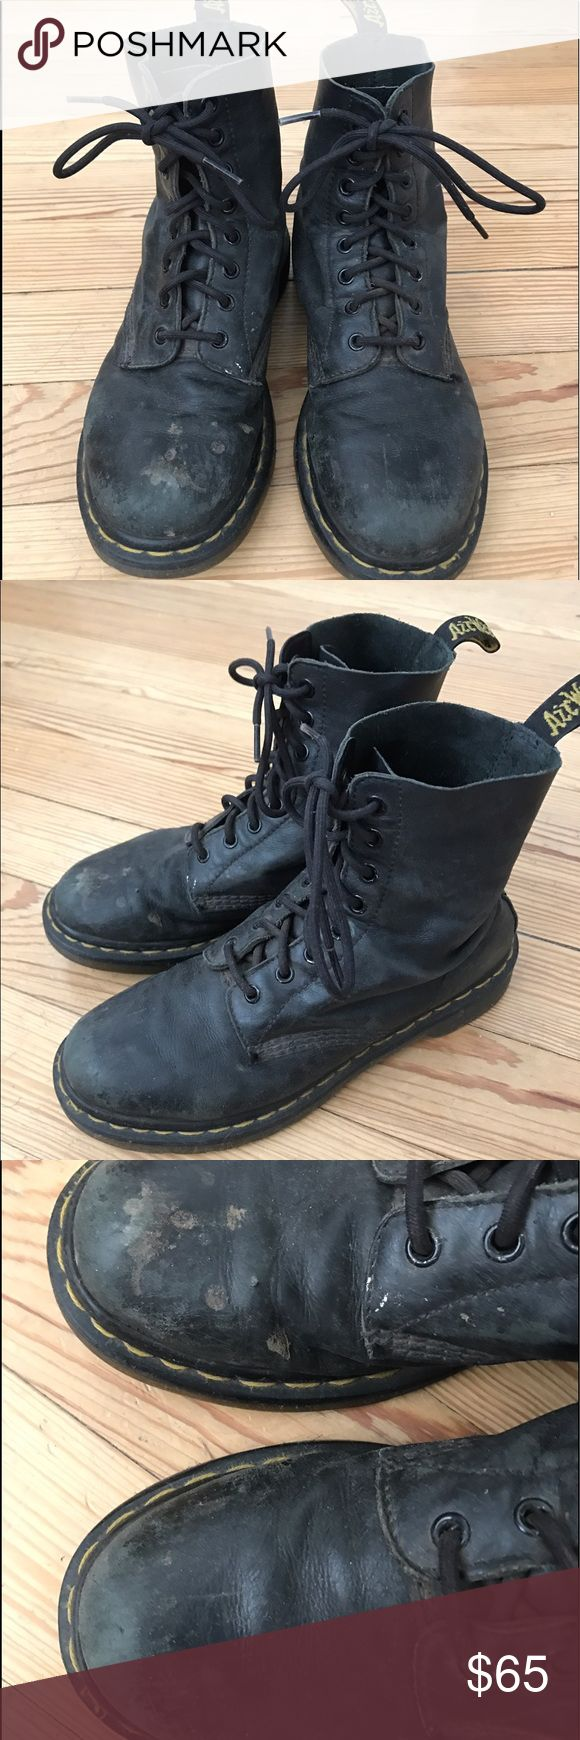 Dr martens original 1460 boots Definitely well worn but still quality leather and sole without any structural flaws. Only damage is cosmetic but it gives a punky vibe that suits them. These boots will still last forever in true docs form. Dr. Martens Shoes Lace Up Boots